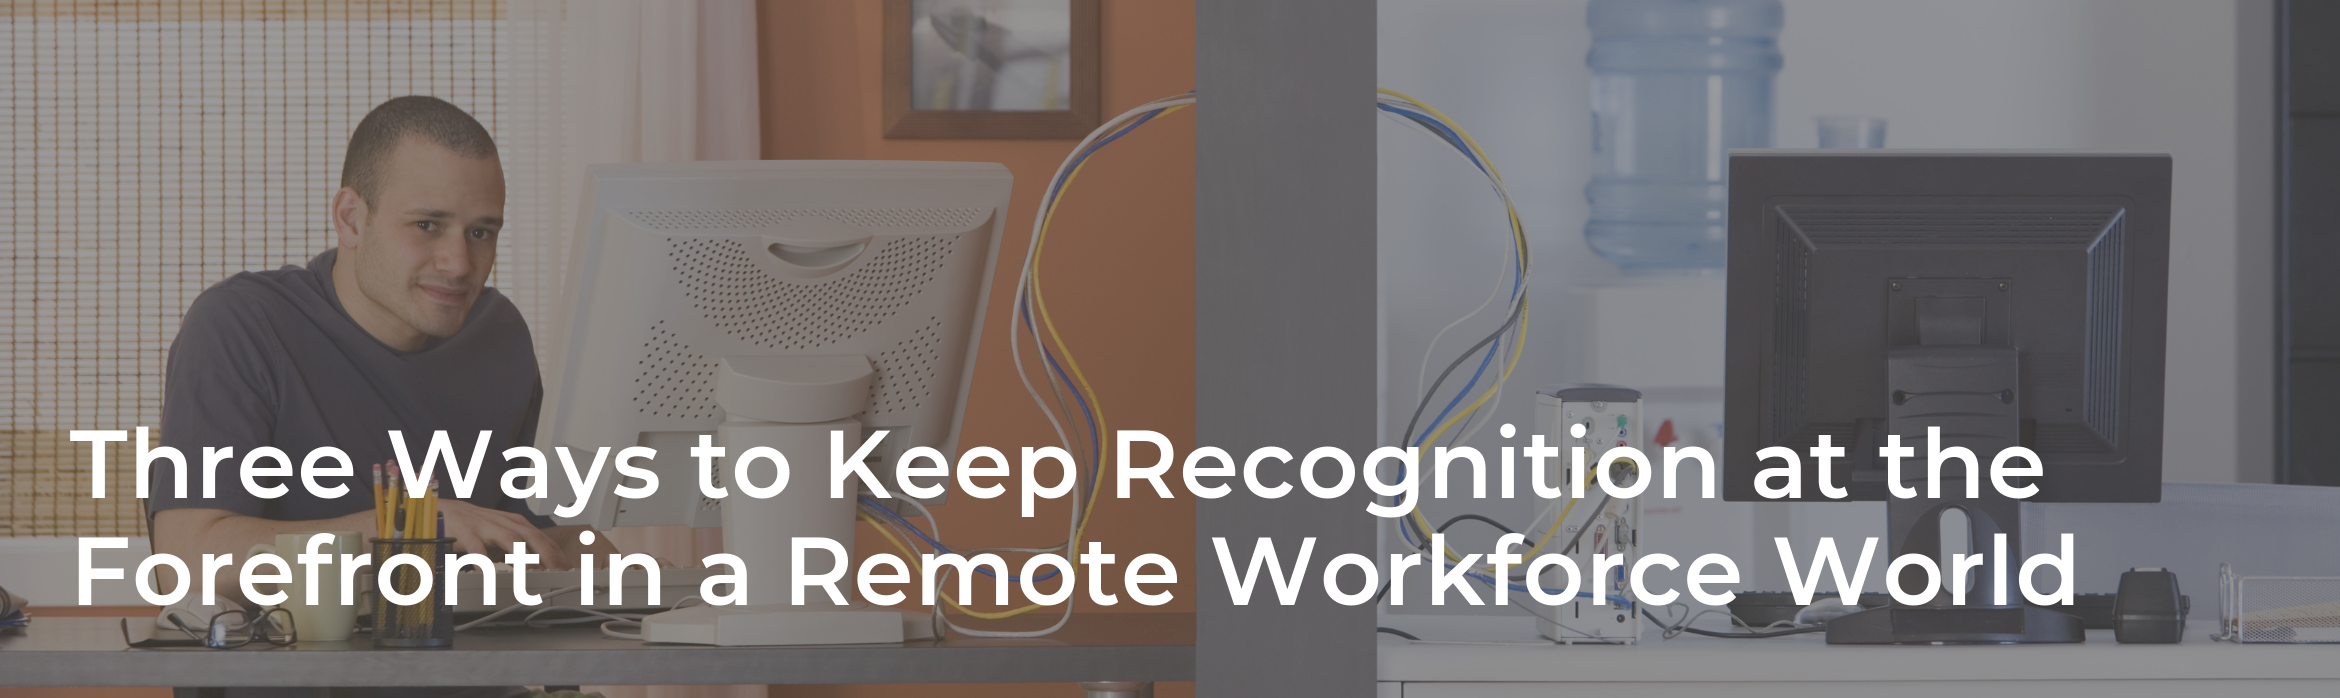 Three Ways to Keep Recognition at the Forefront in a Remote Workforce World